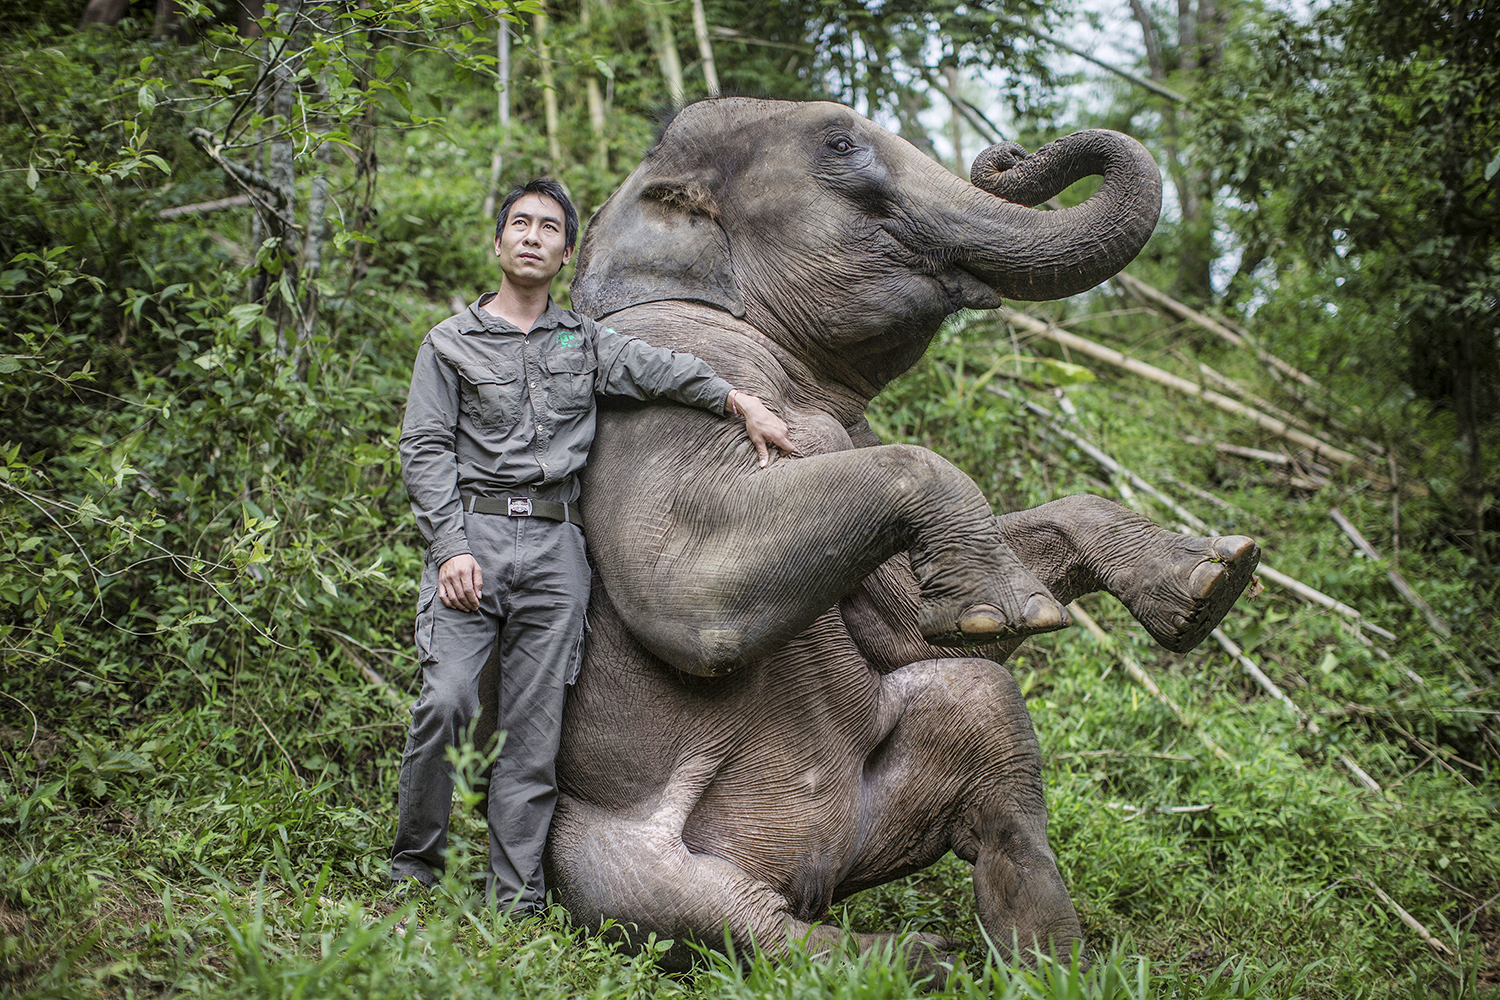 Xiong Chaoyong of the local Asian elephant breeding center poses with a wild elephant in the Wild Elephant Valley in Jinghong city, Xishuangbanna Dai Autonomous Prefecture, southwest China's Yunnan province, 21 June 2014.